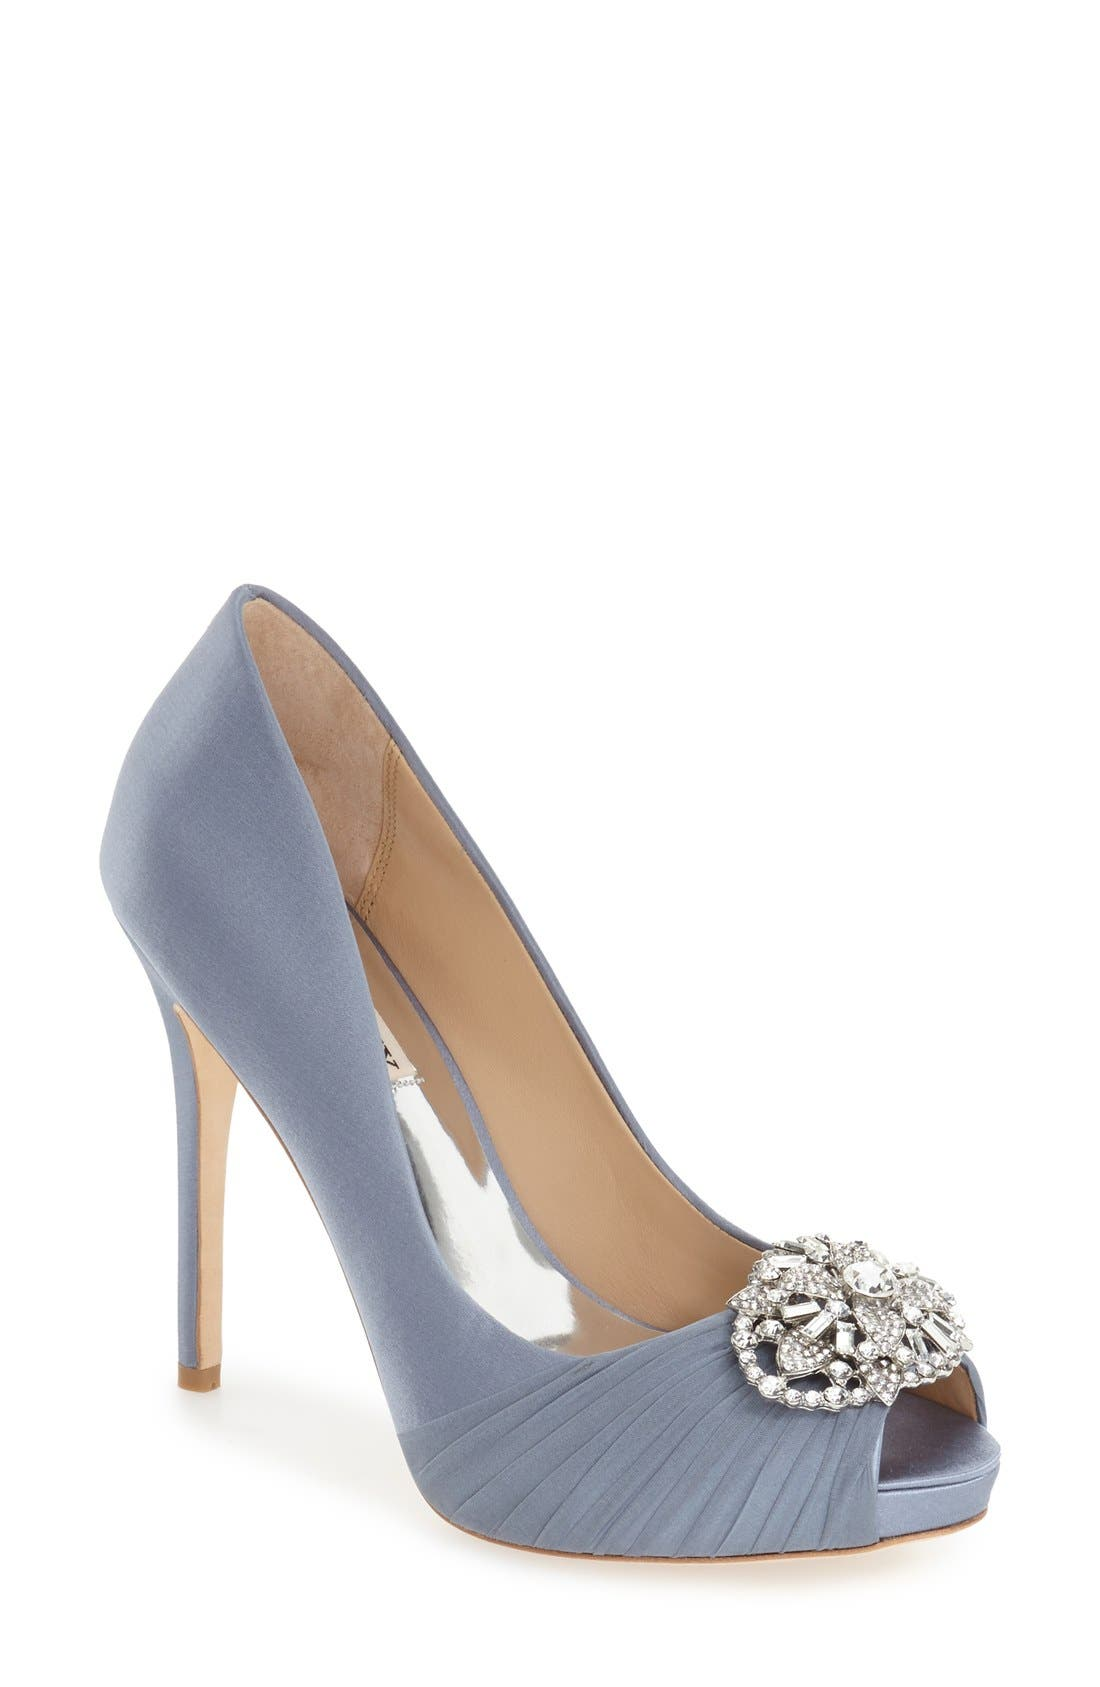 Alternate Image 1 Selected - Badgley Mischka 'Desi' Peep Toe Platform Pump (Women)